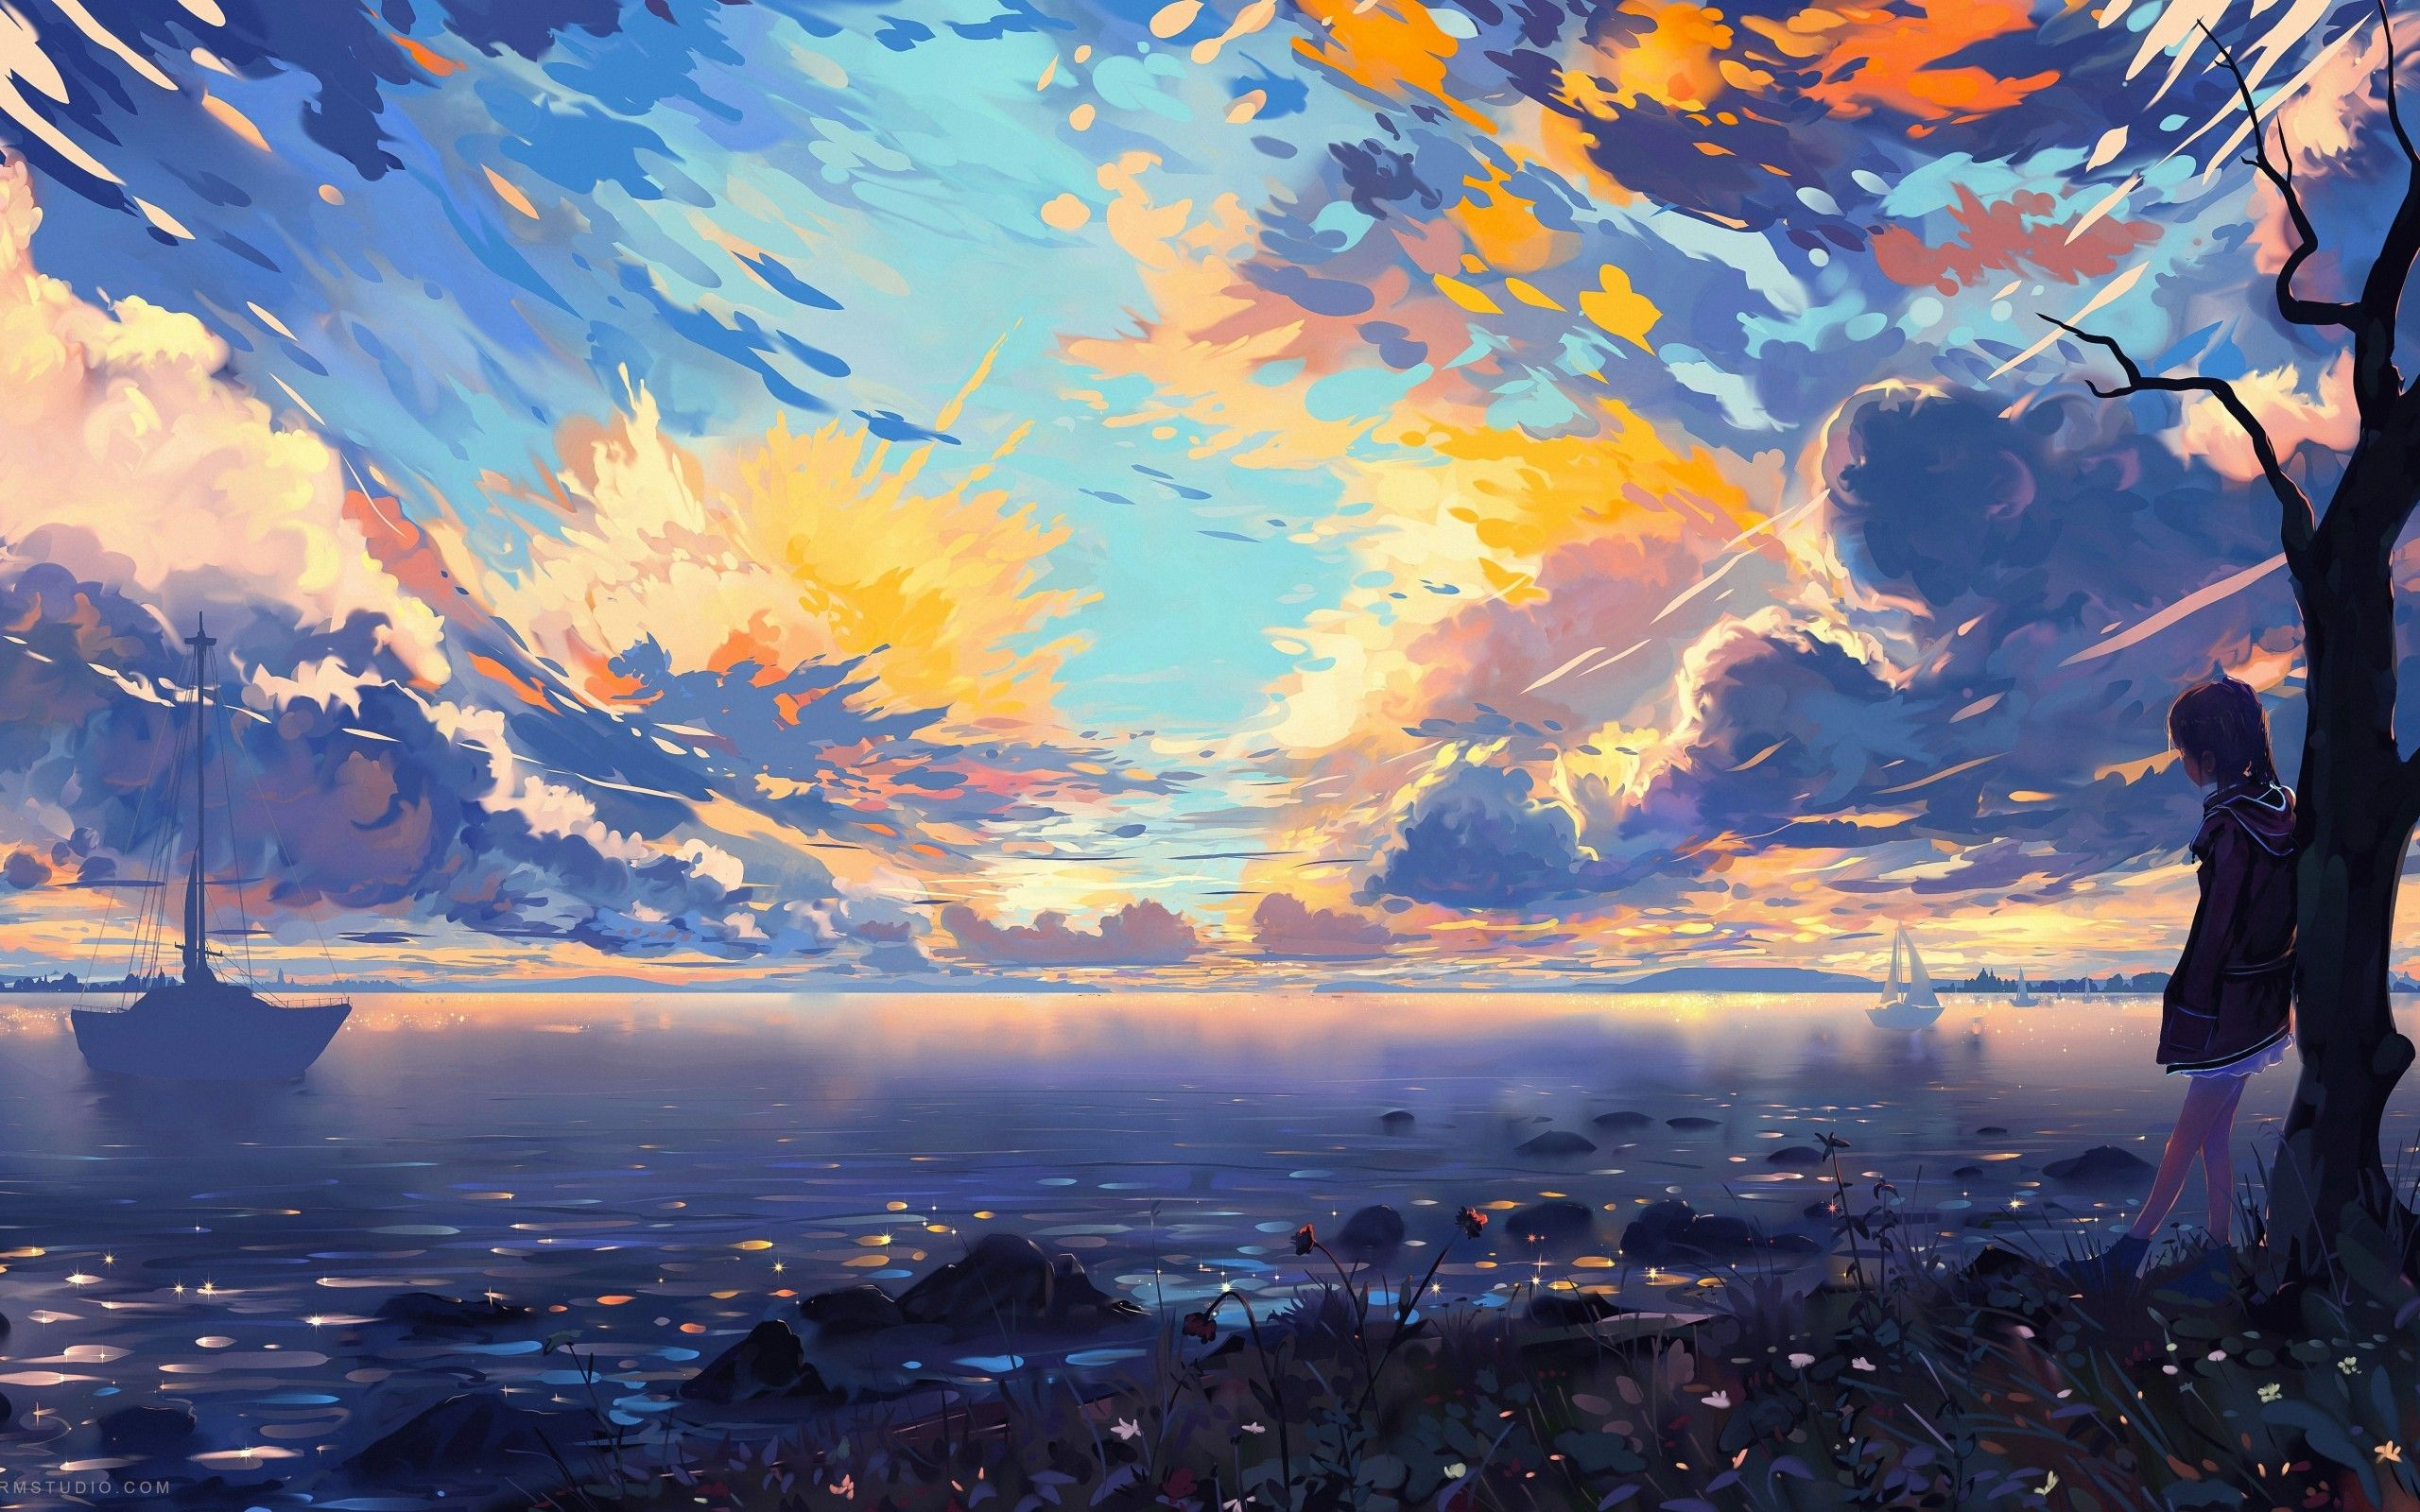 Colorful Anime Scenery Wallpapers   Top Colorful Anime 2560x1600